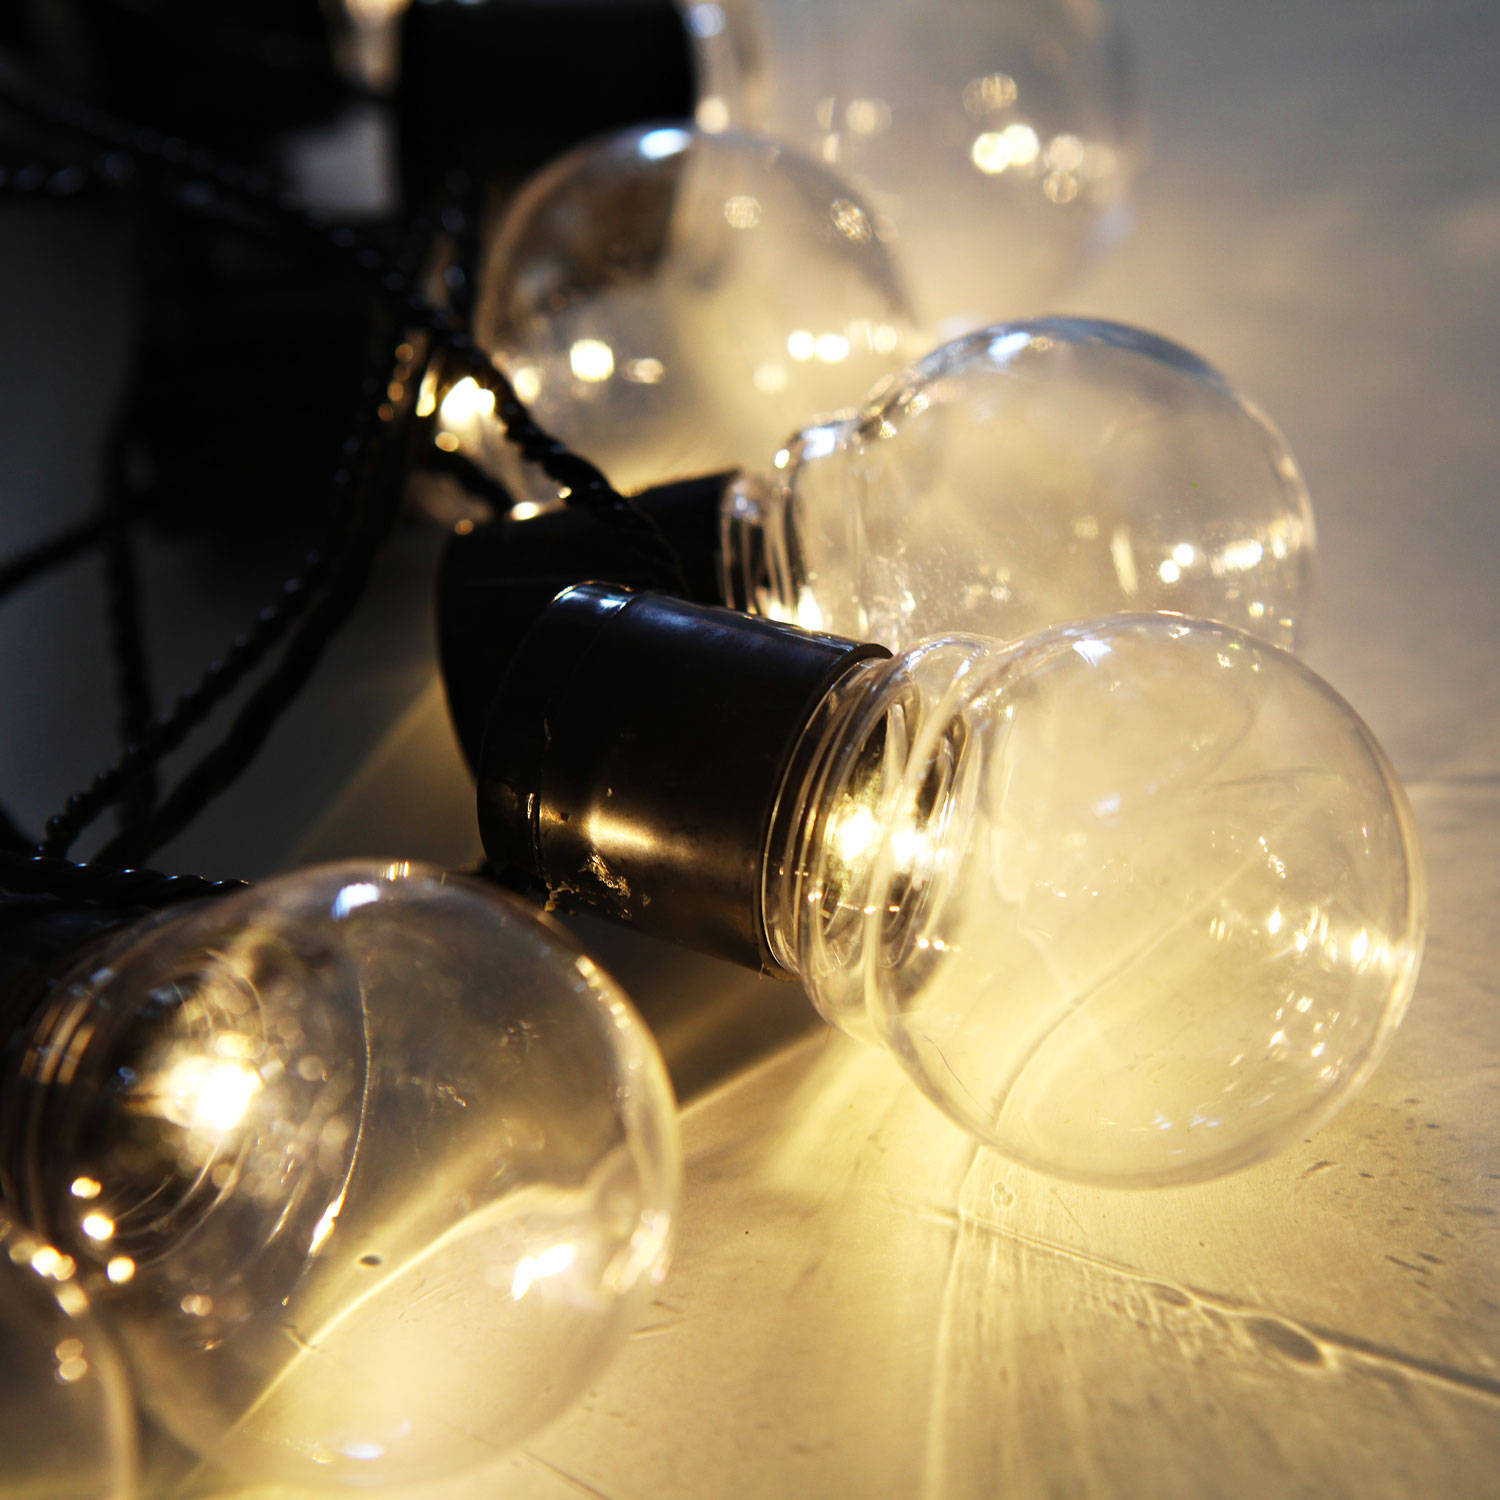 String lights decorative string lights clear globe connectable plug in festoon - Decorative garden lights ...